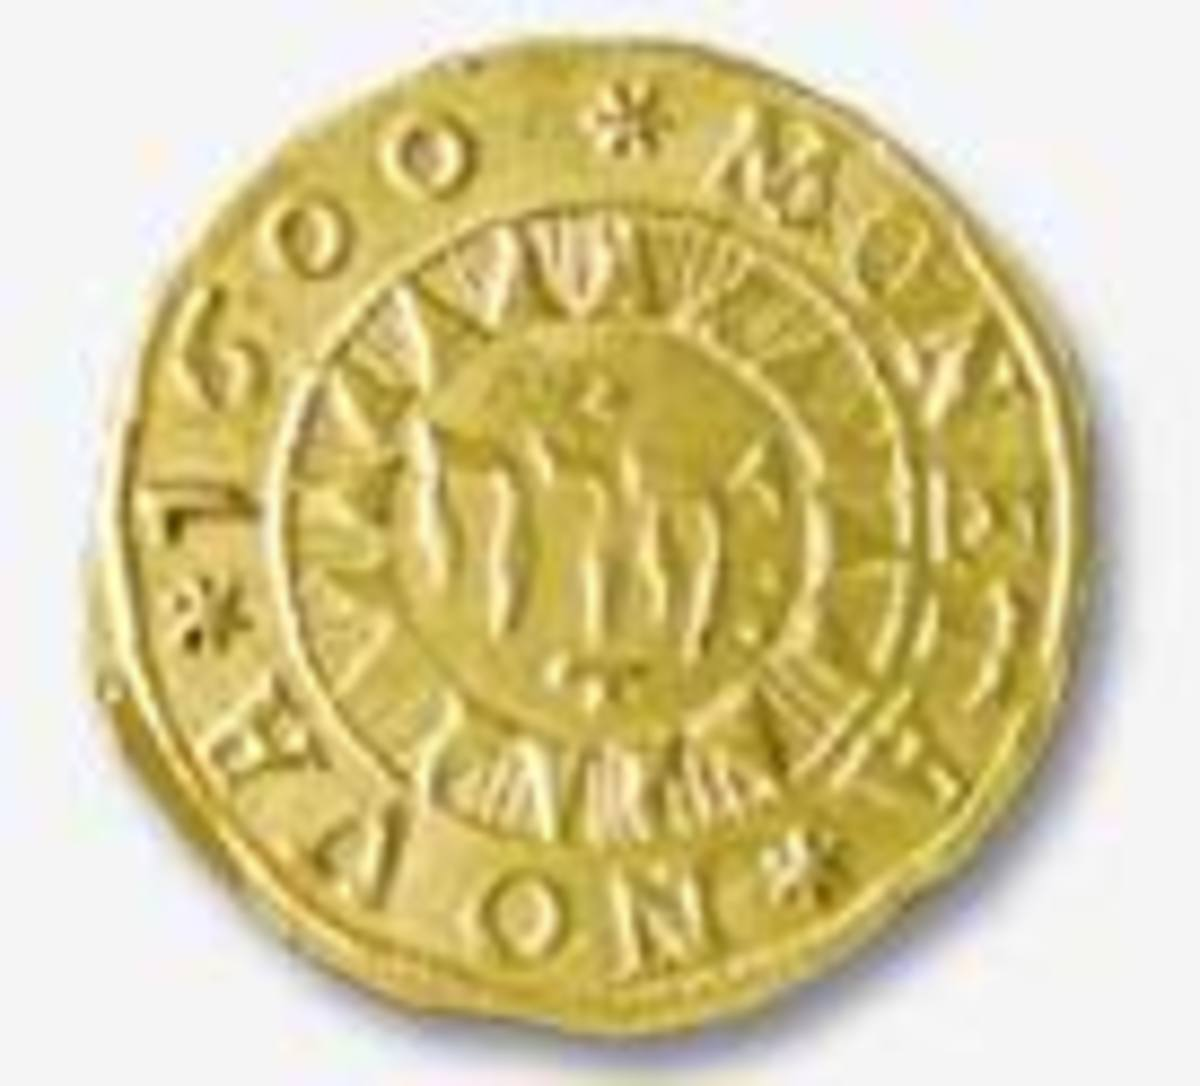 One of the many Jehovah Coins once in circulation, which are now collector items.